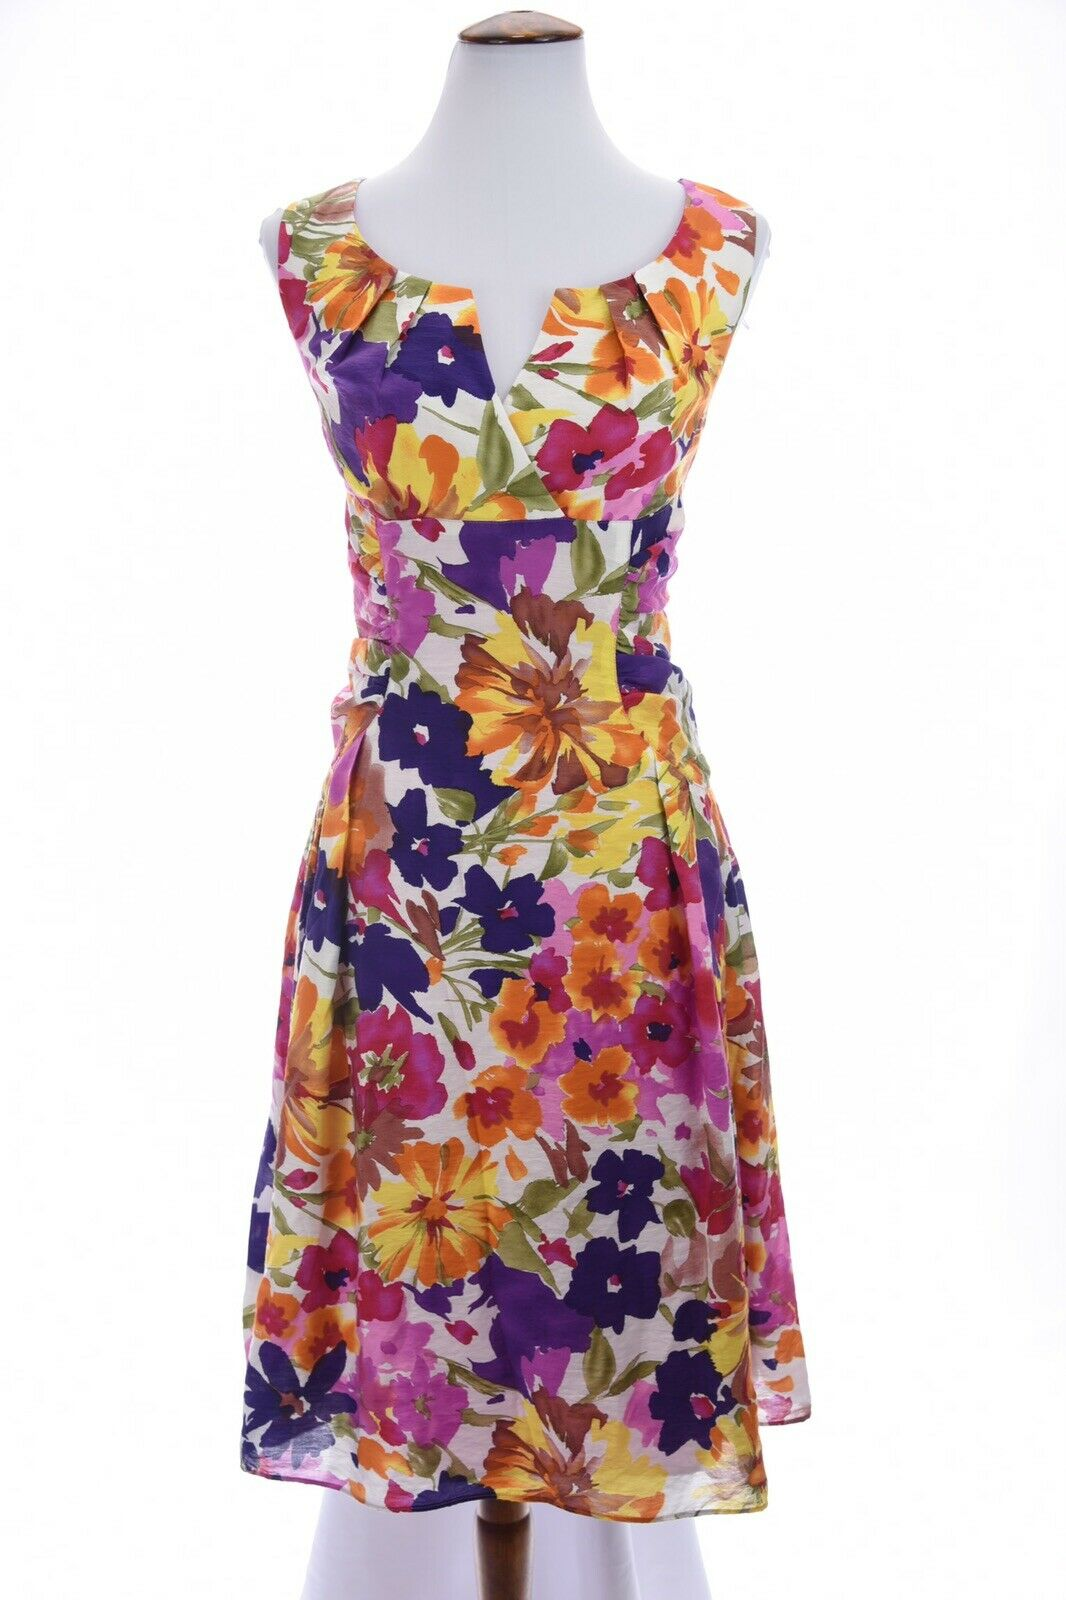 b020a867932 Adrianna Papell and Dress A Line Surplice Floral Print Sz 12 Large Fit  Flare ntyxbb28313-Dresses